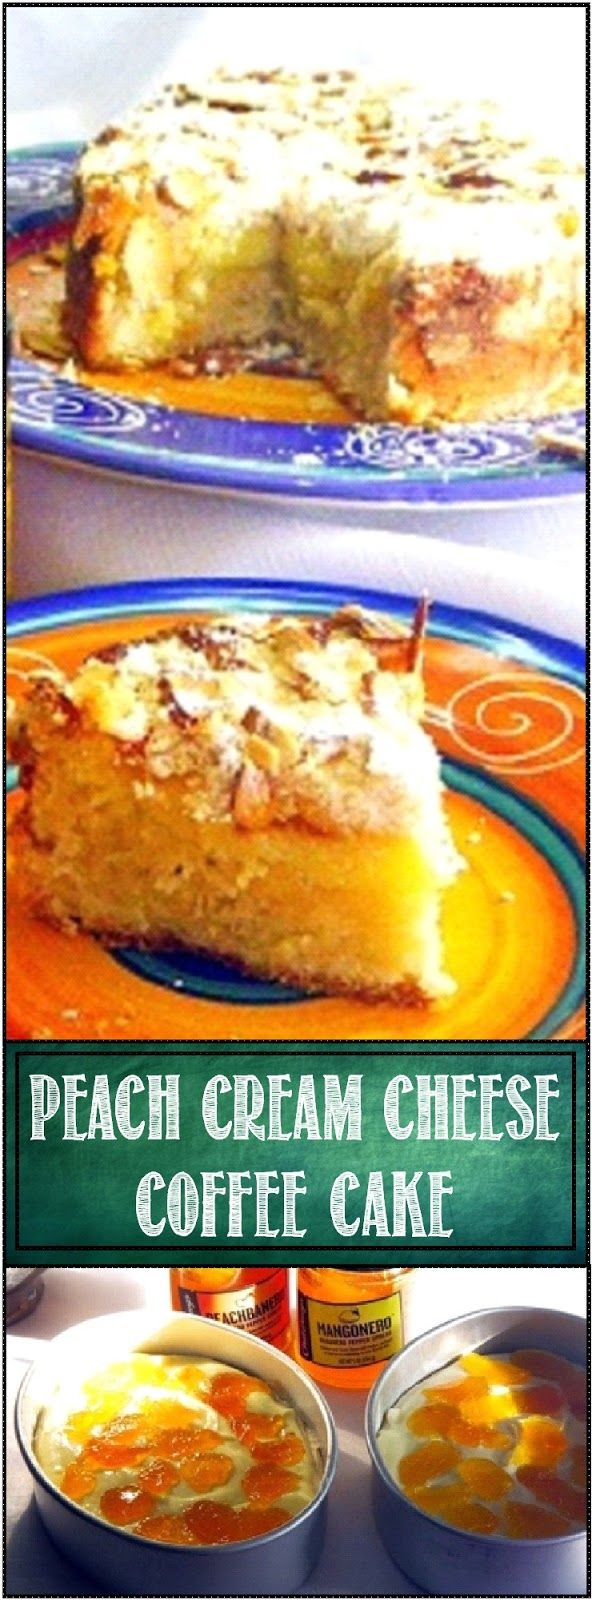 Peach Cream Cheese Coffee Cake ala One Perfect Bite... OH YUMMY... I made a SPICY Coffee Cake with a peachHABANERO Jam.  But this recipe works with any Jam... Store bought or home made.  The cake is moist and tender and DELICIOUS!  Use your imagination and make the coffee cake of your dreams with this recipe